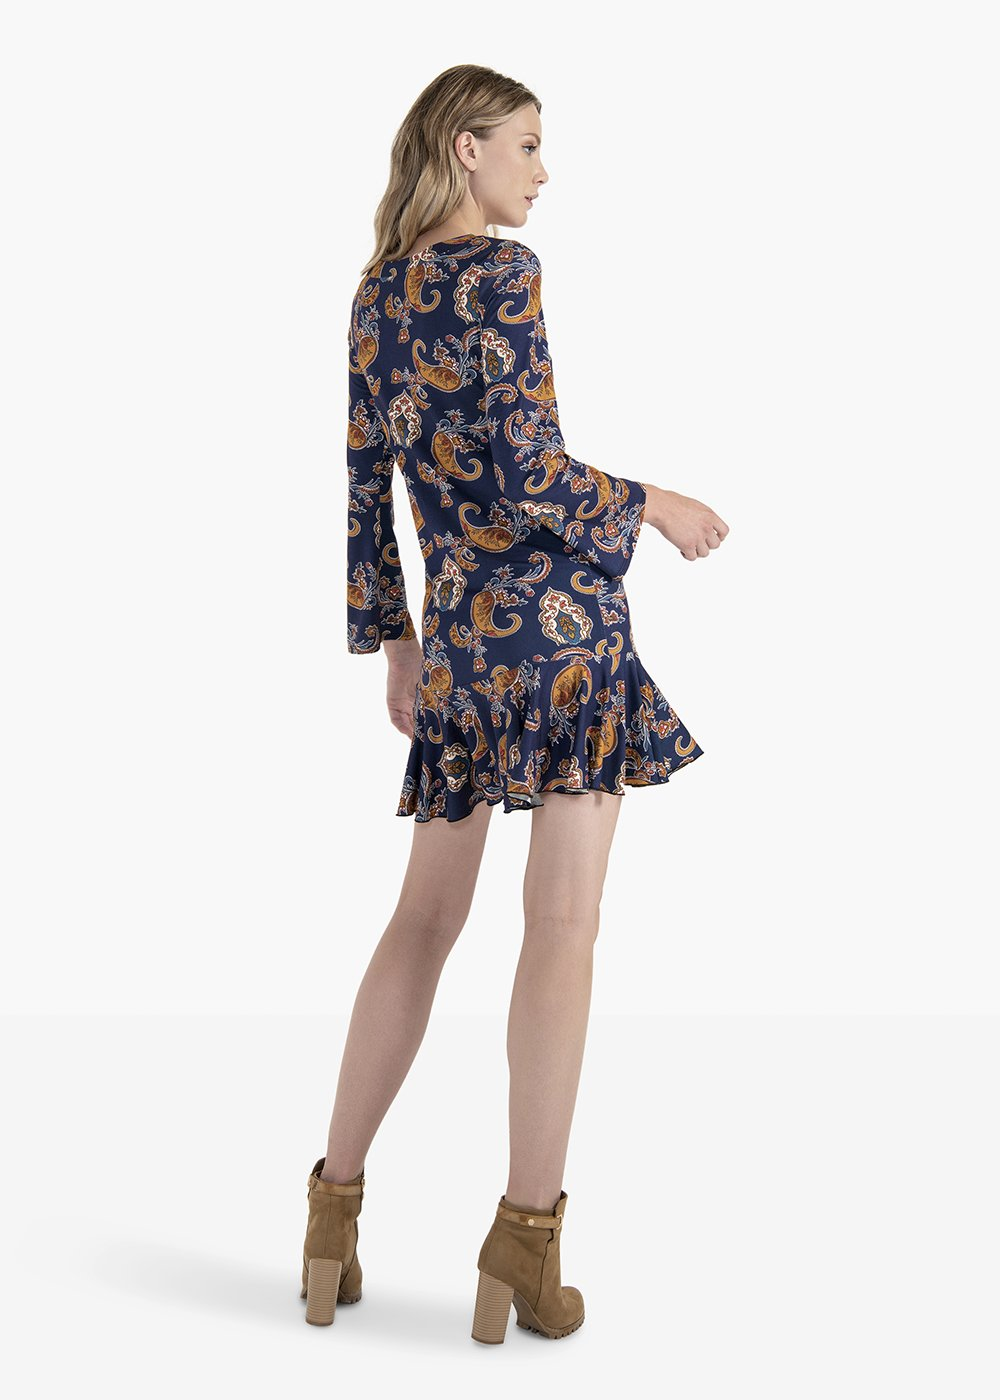 Andrew long-sleeved dress with boat neckline